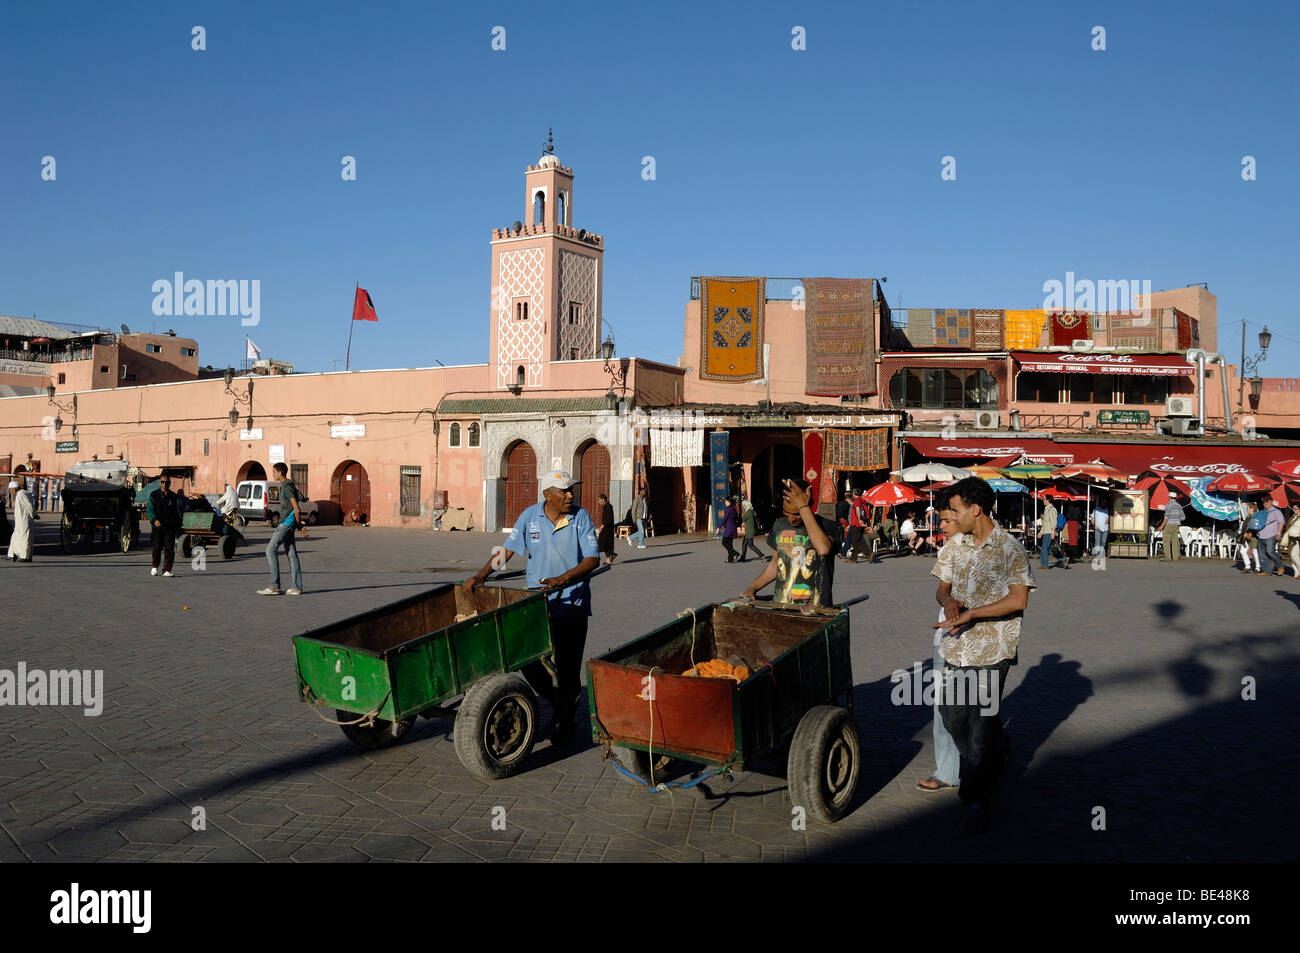 Daily Wage Labourers Pushing Hand Carts on Djemaa El-Fna Square Marrakesh Morocco - Stock Image